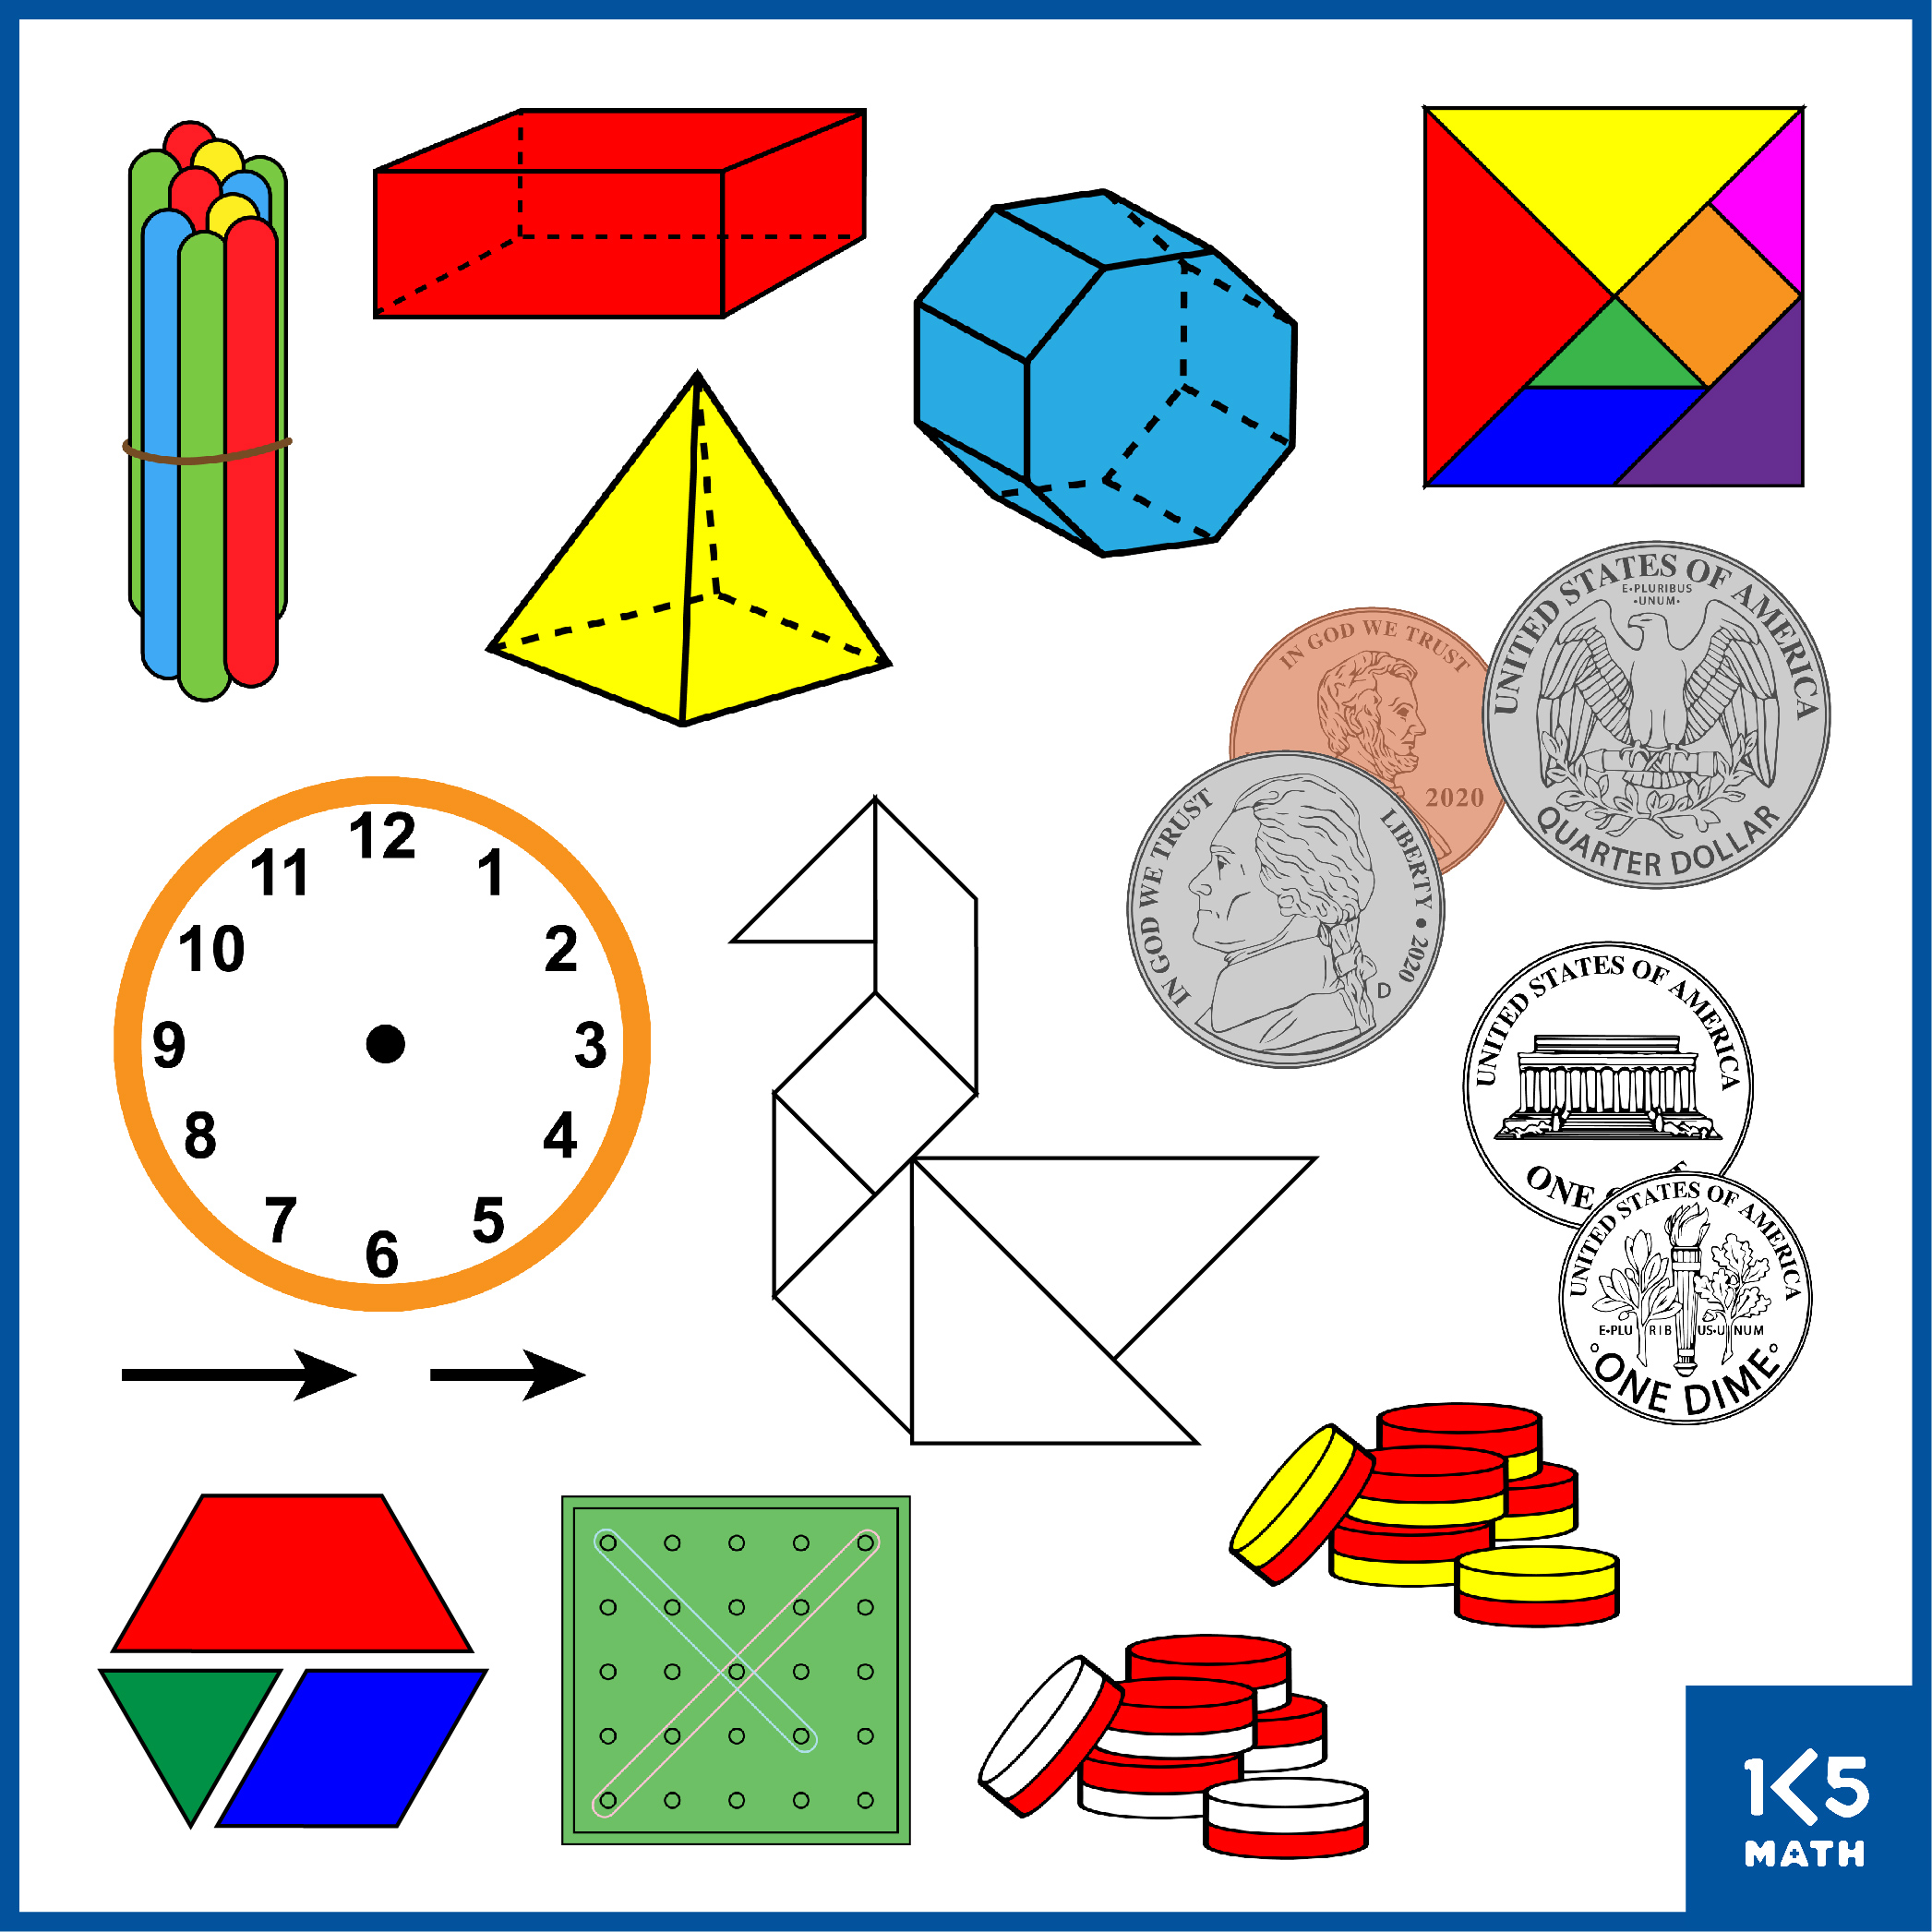 K-2 Math Clip Art contains over 1,500 images.